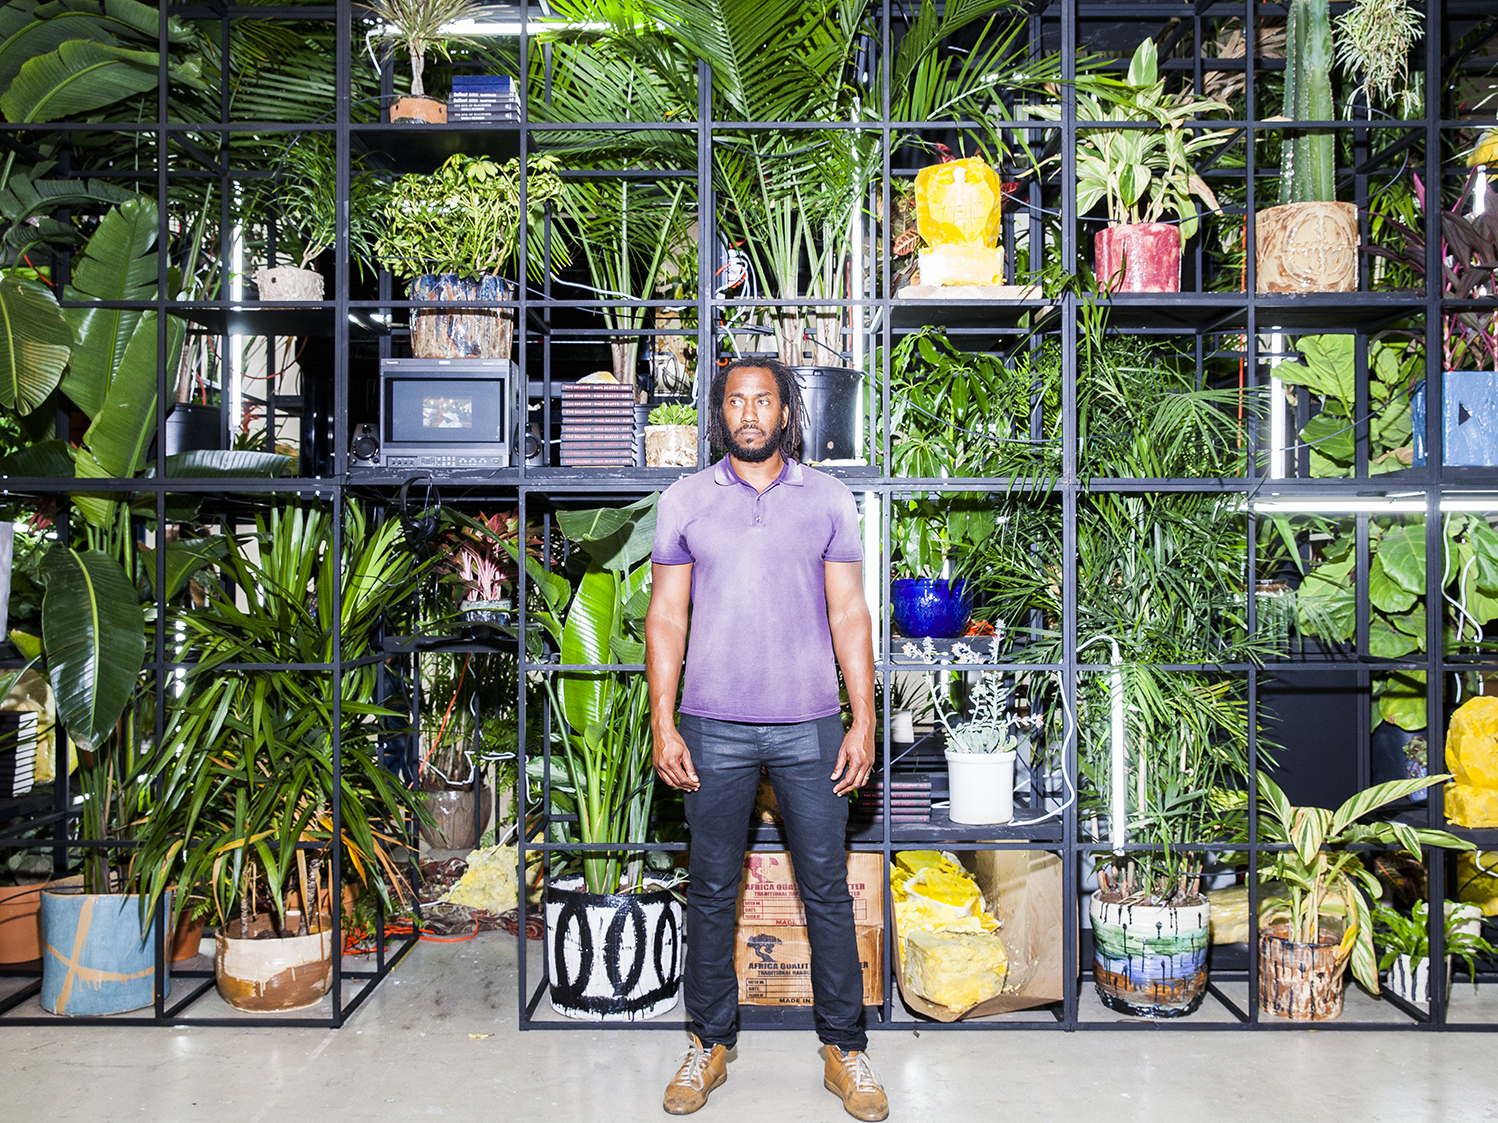 Artist Rashid Johnson ponders the limits of freedom